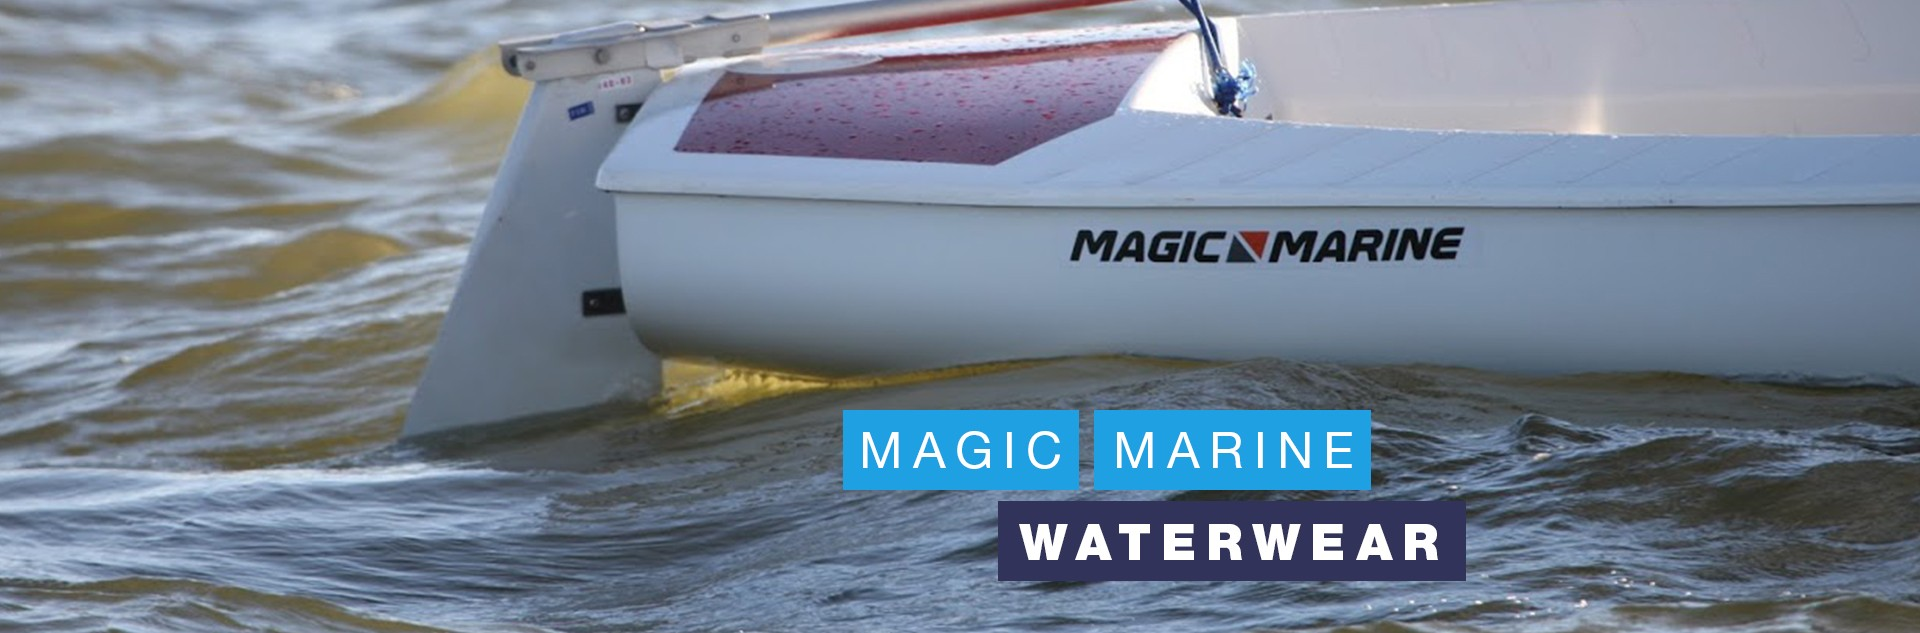 Magic Marine waterwear